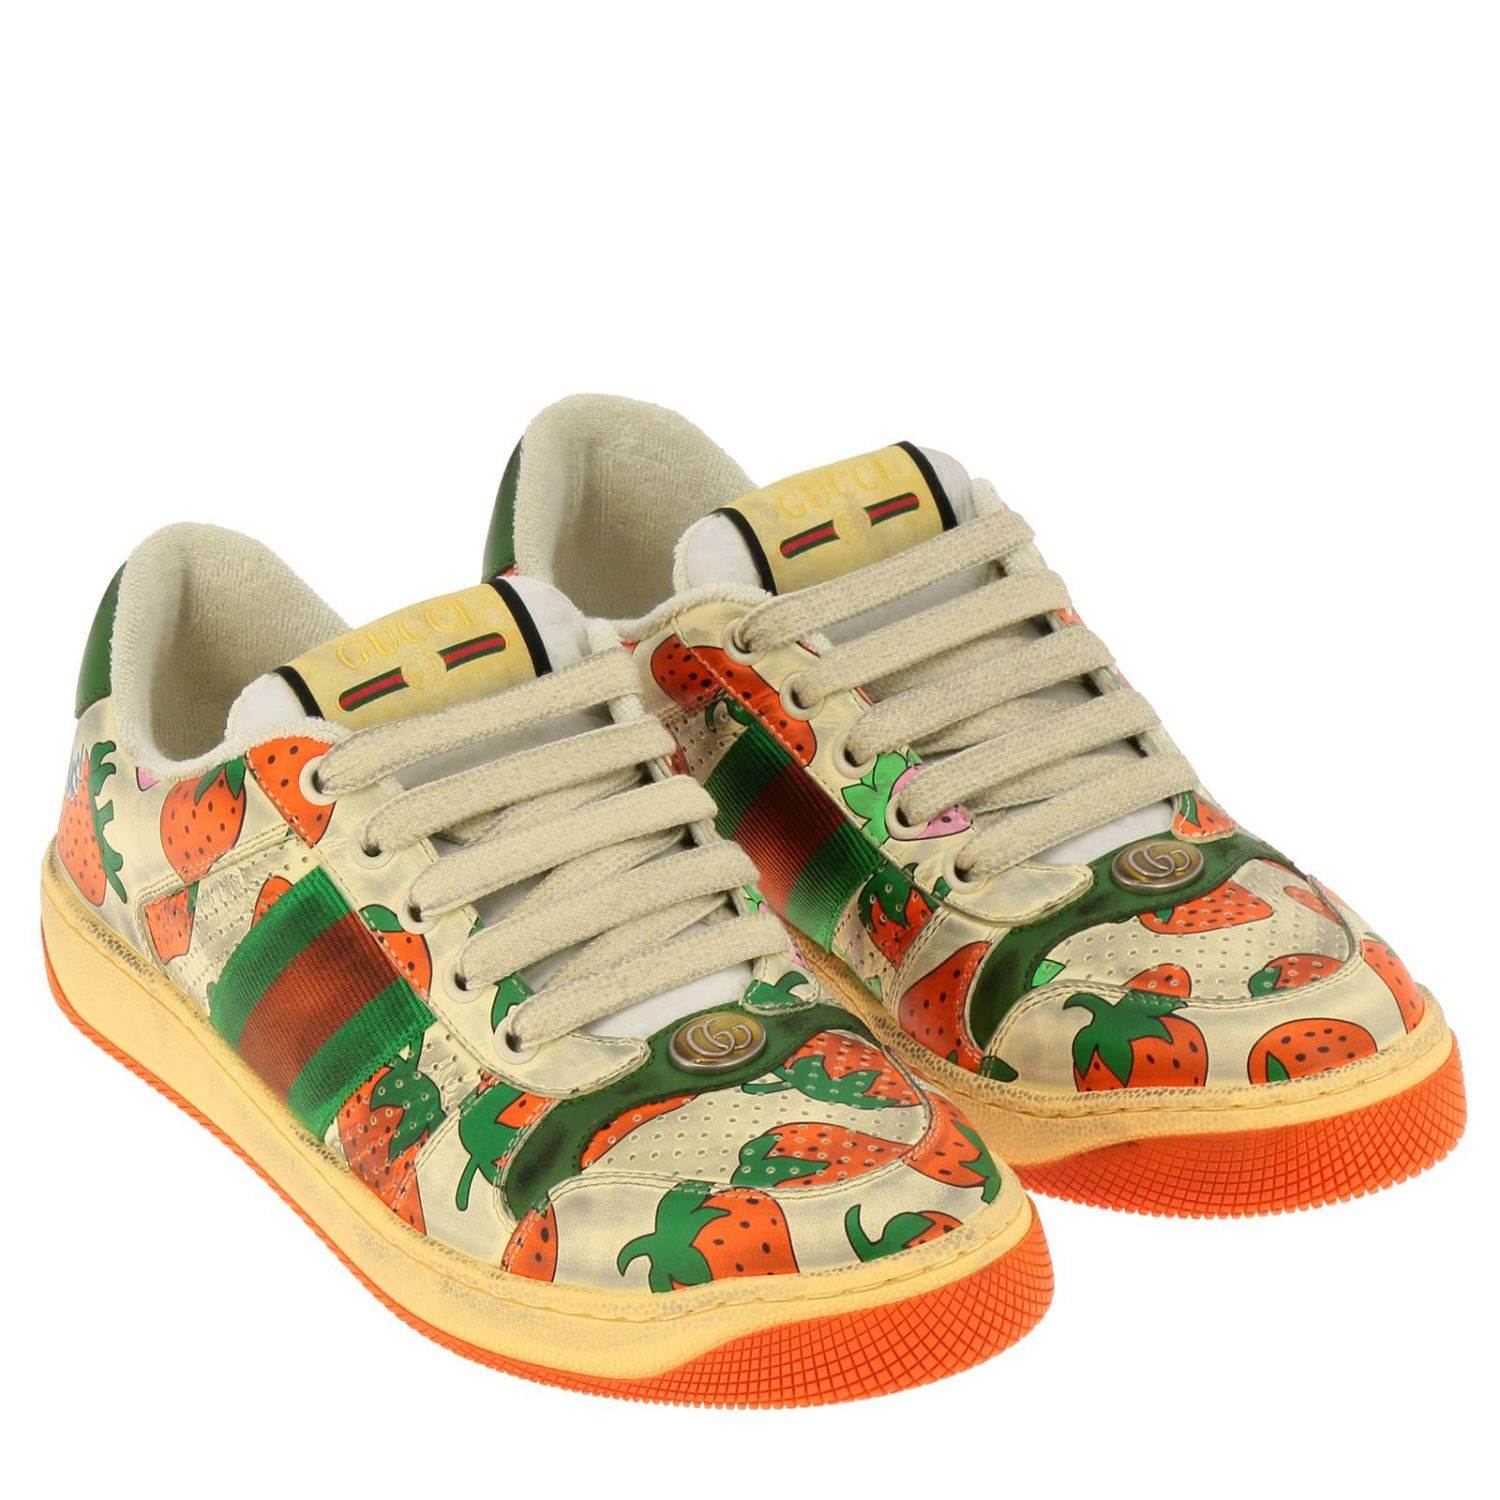 Sneakers Virtus Gucci in pelle vintage con stampa fragole all over bianco 2